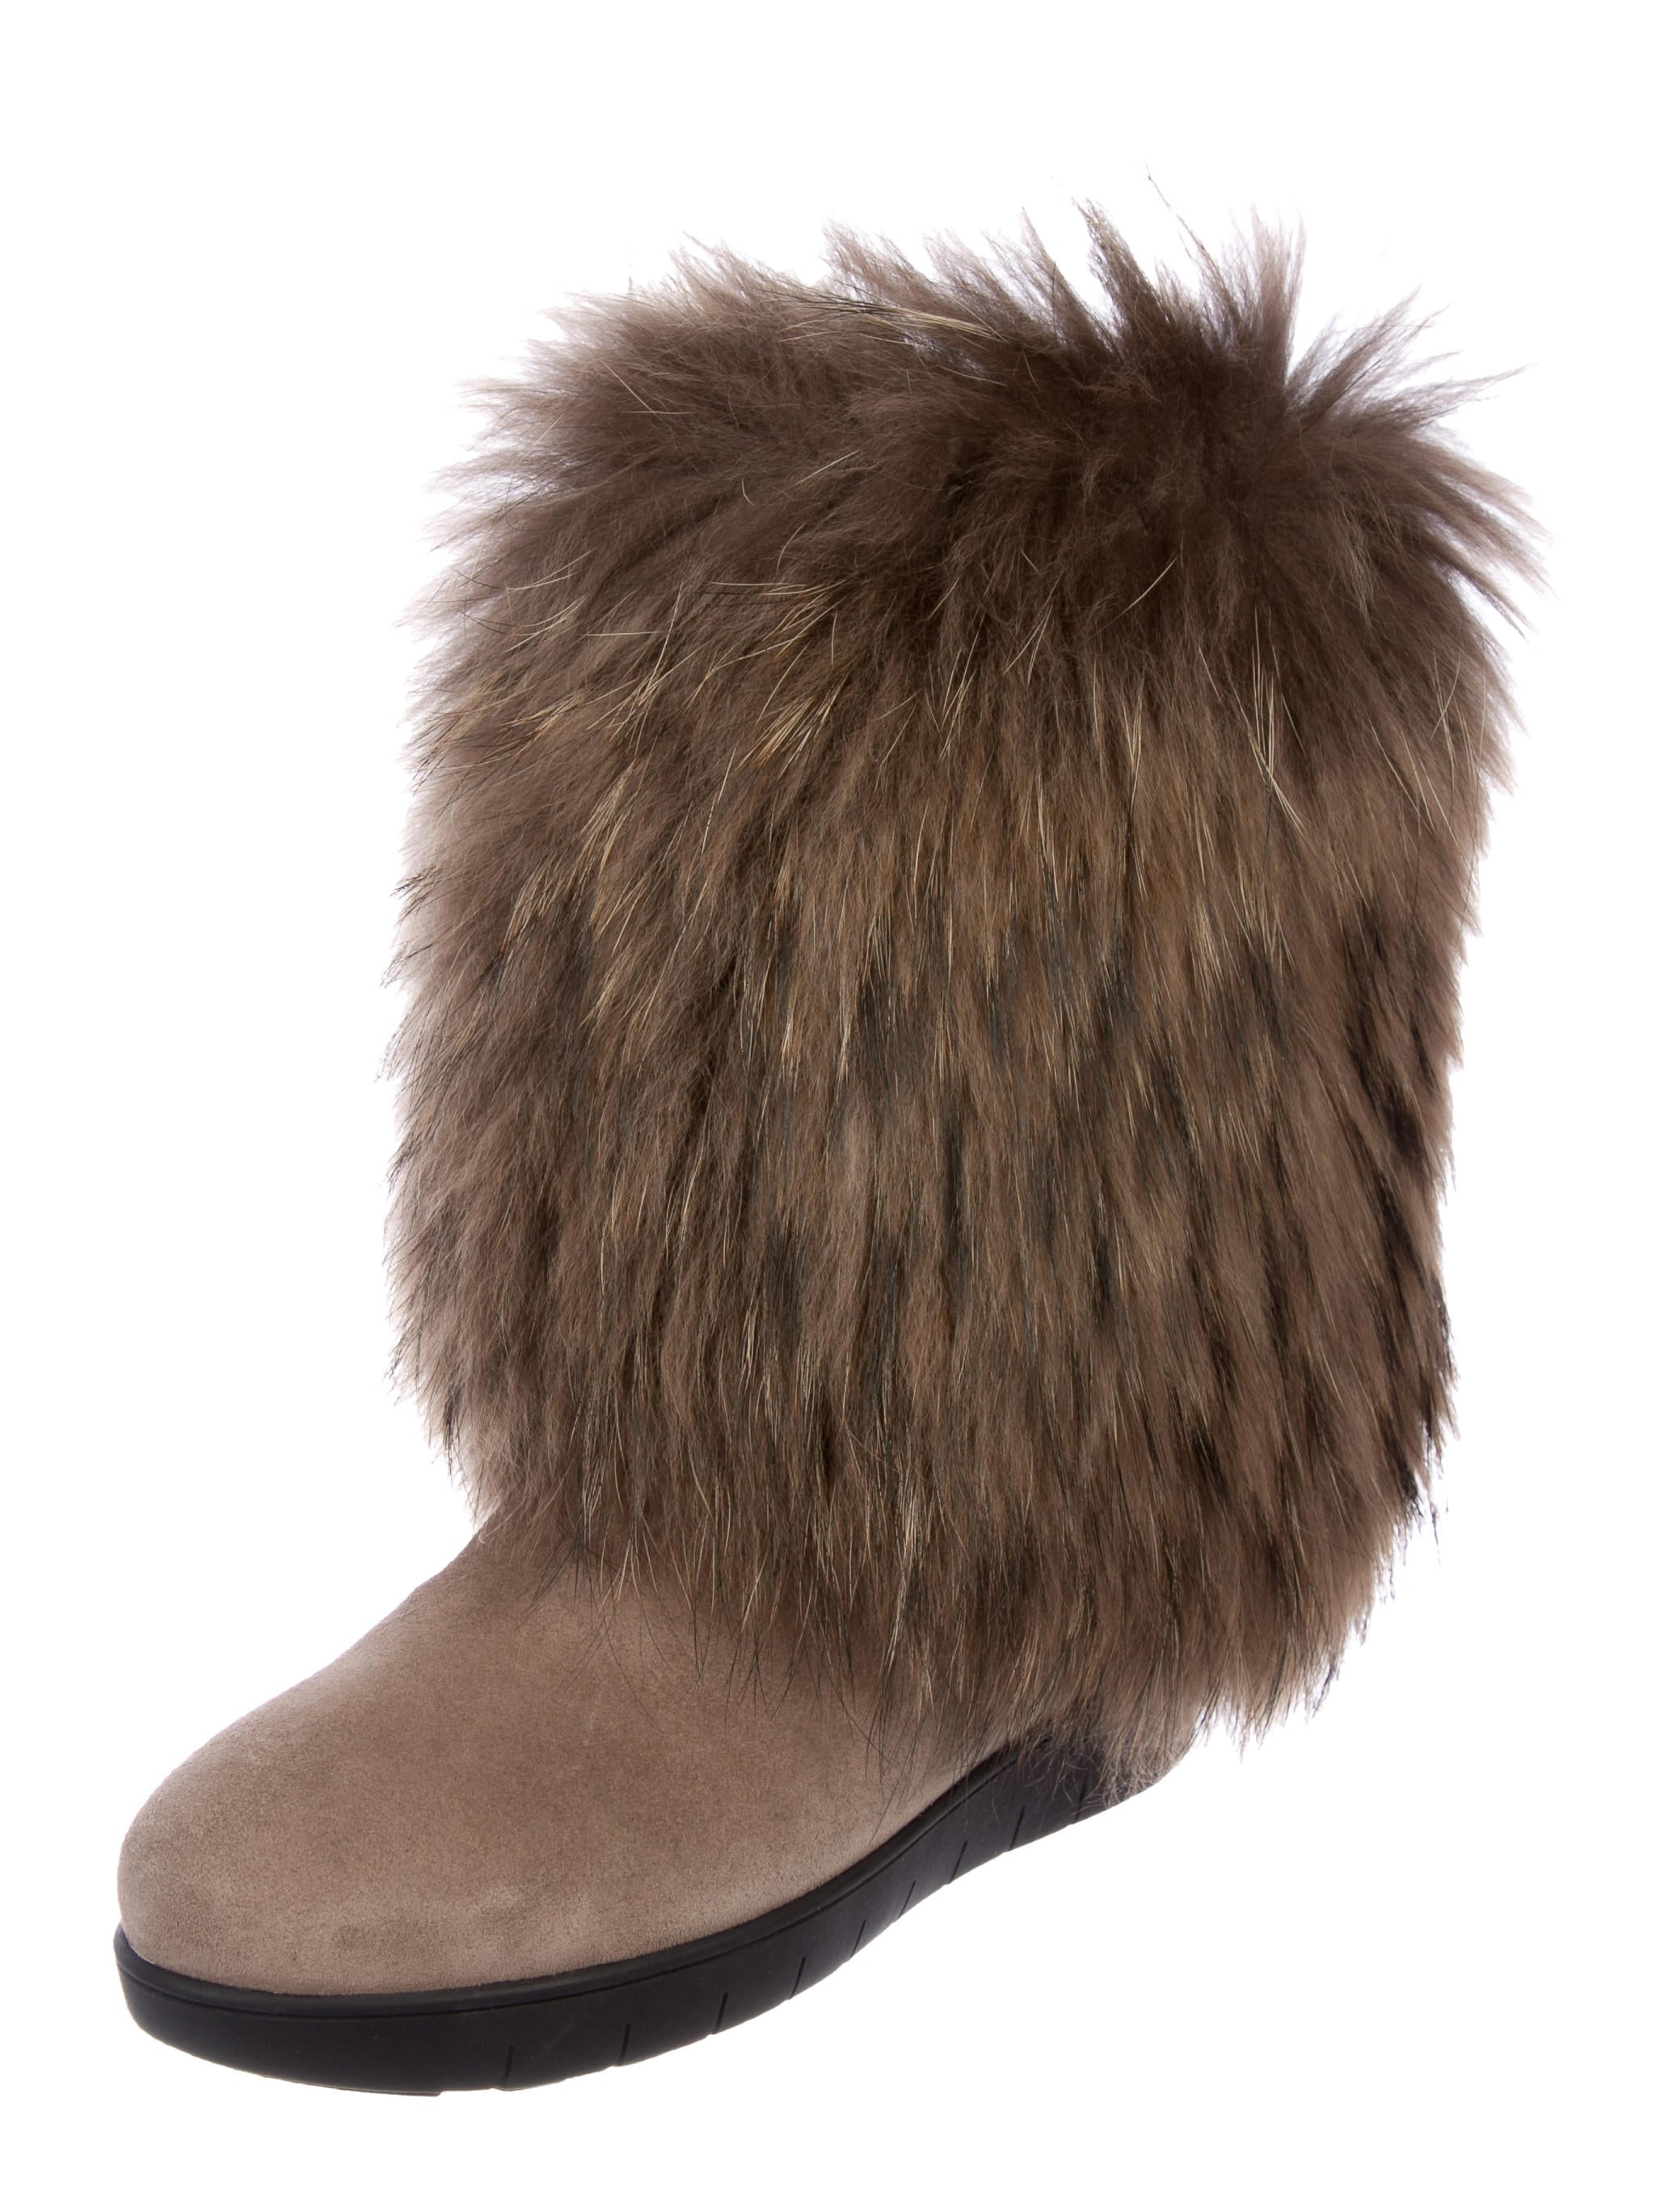 sale eastbay cheap sale online Aquatalia Wilamina Fur Boots w/ Tags M6XsXxBZP